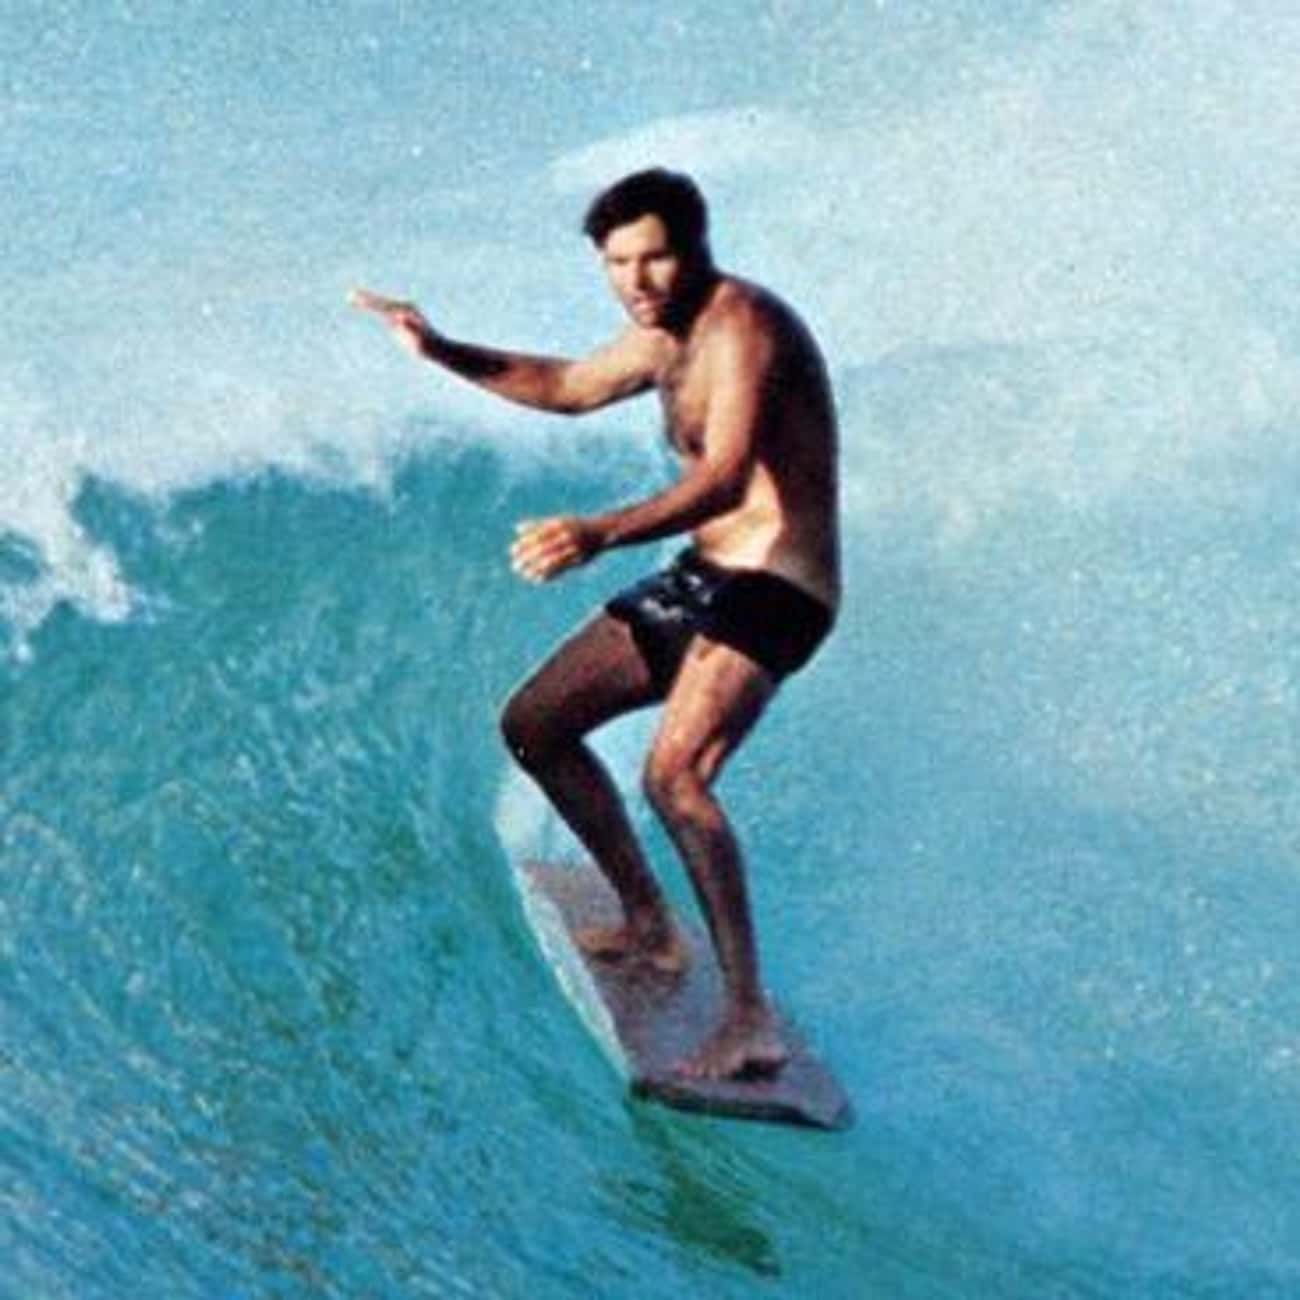 Miki Dora is listed (or ranked) 4 on the list Famous Male Surfers